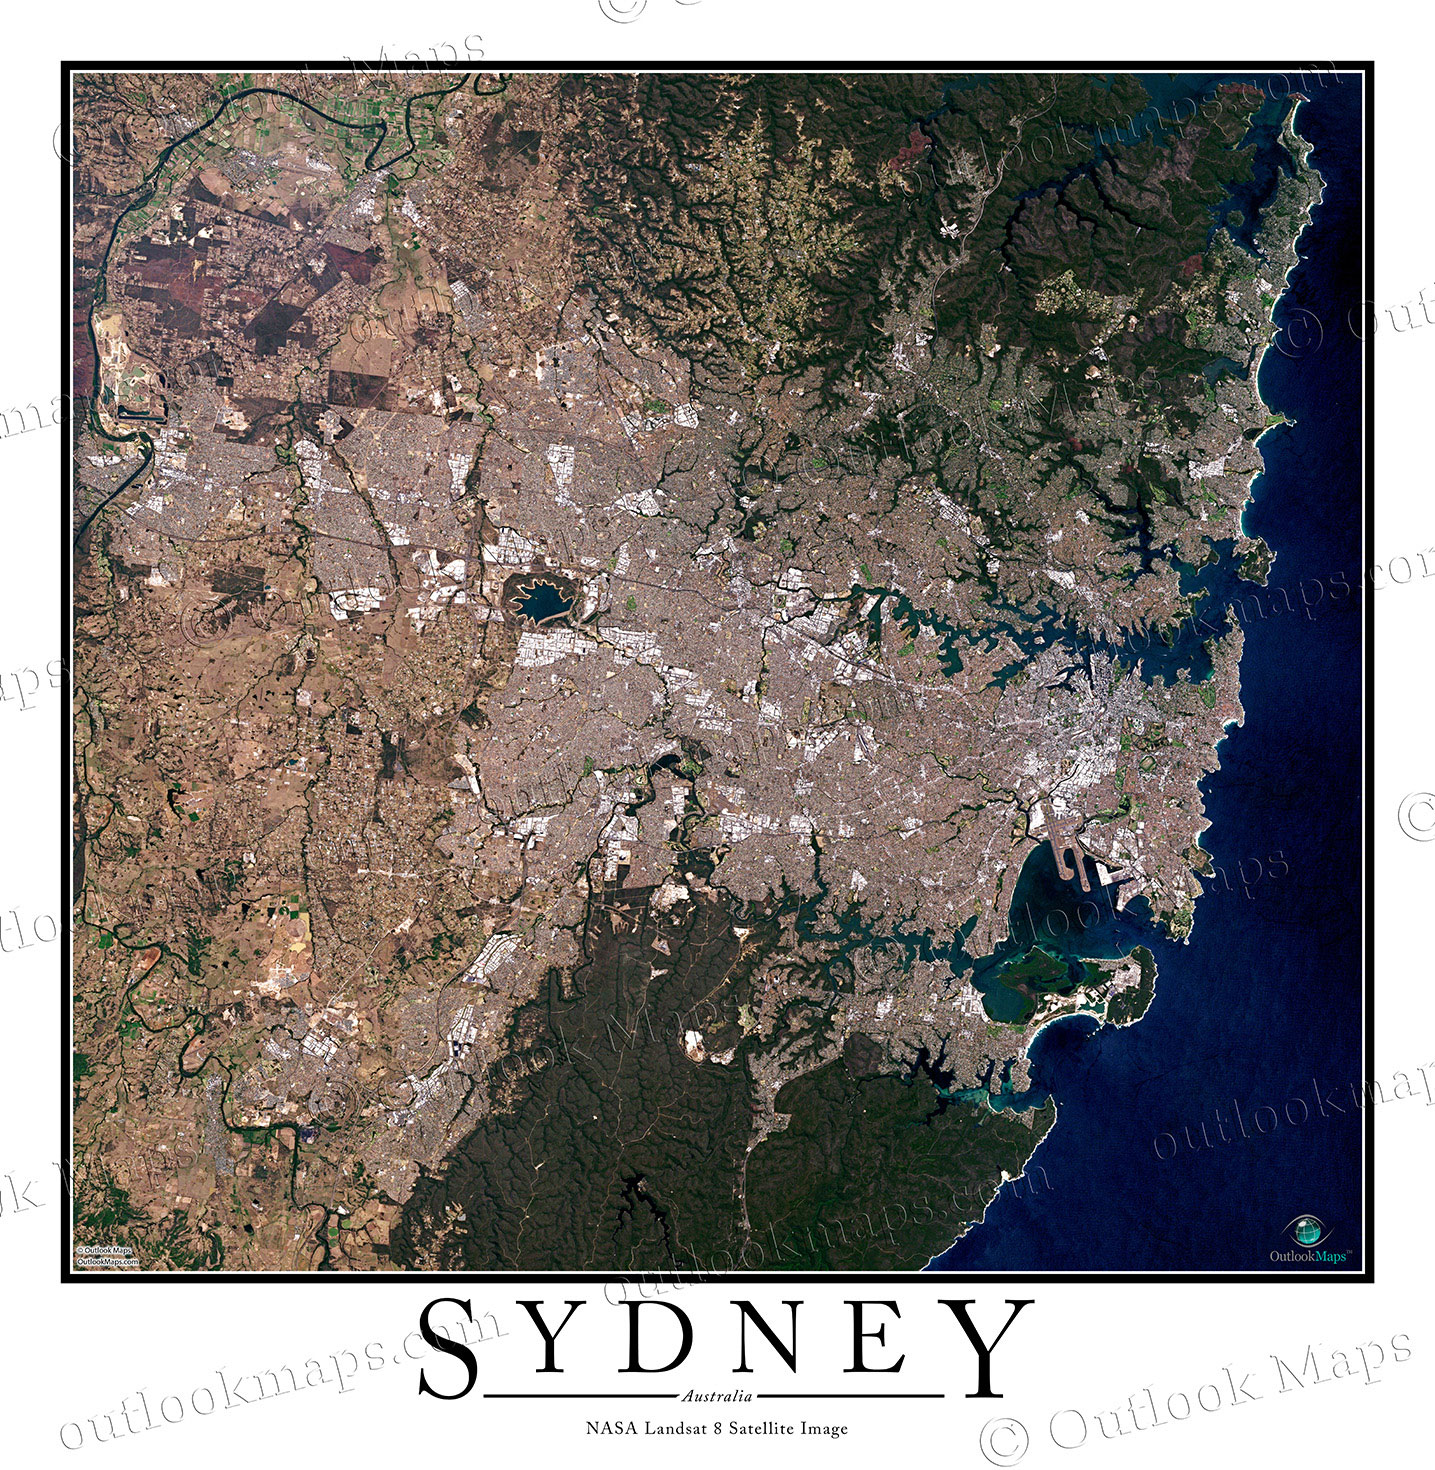 Sydney Satellite Map on australia great barrier reef, australia population density, australia water map, australia tina louise, australia aerial map, australia telephone map, australia physical map, australia accommodation, australia kangaroo, australia slot canyons, australia topographic map, australia actress, australia temperature averages, australia calendar 2015, australia map google, australia earth map, australia ladies, australia forest map, australia movies, australia landscape,